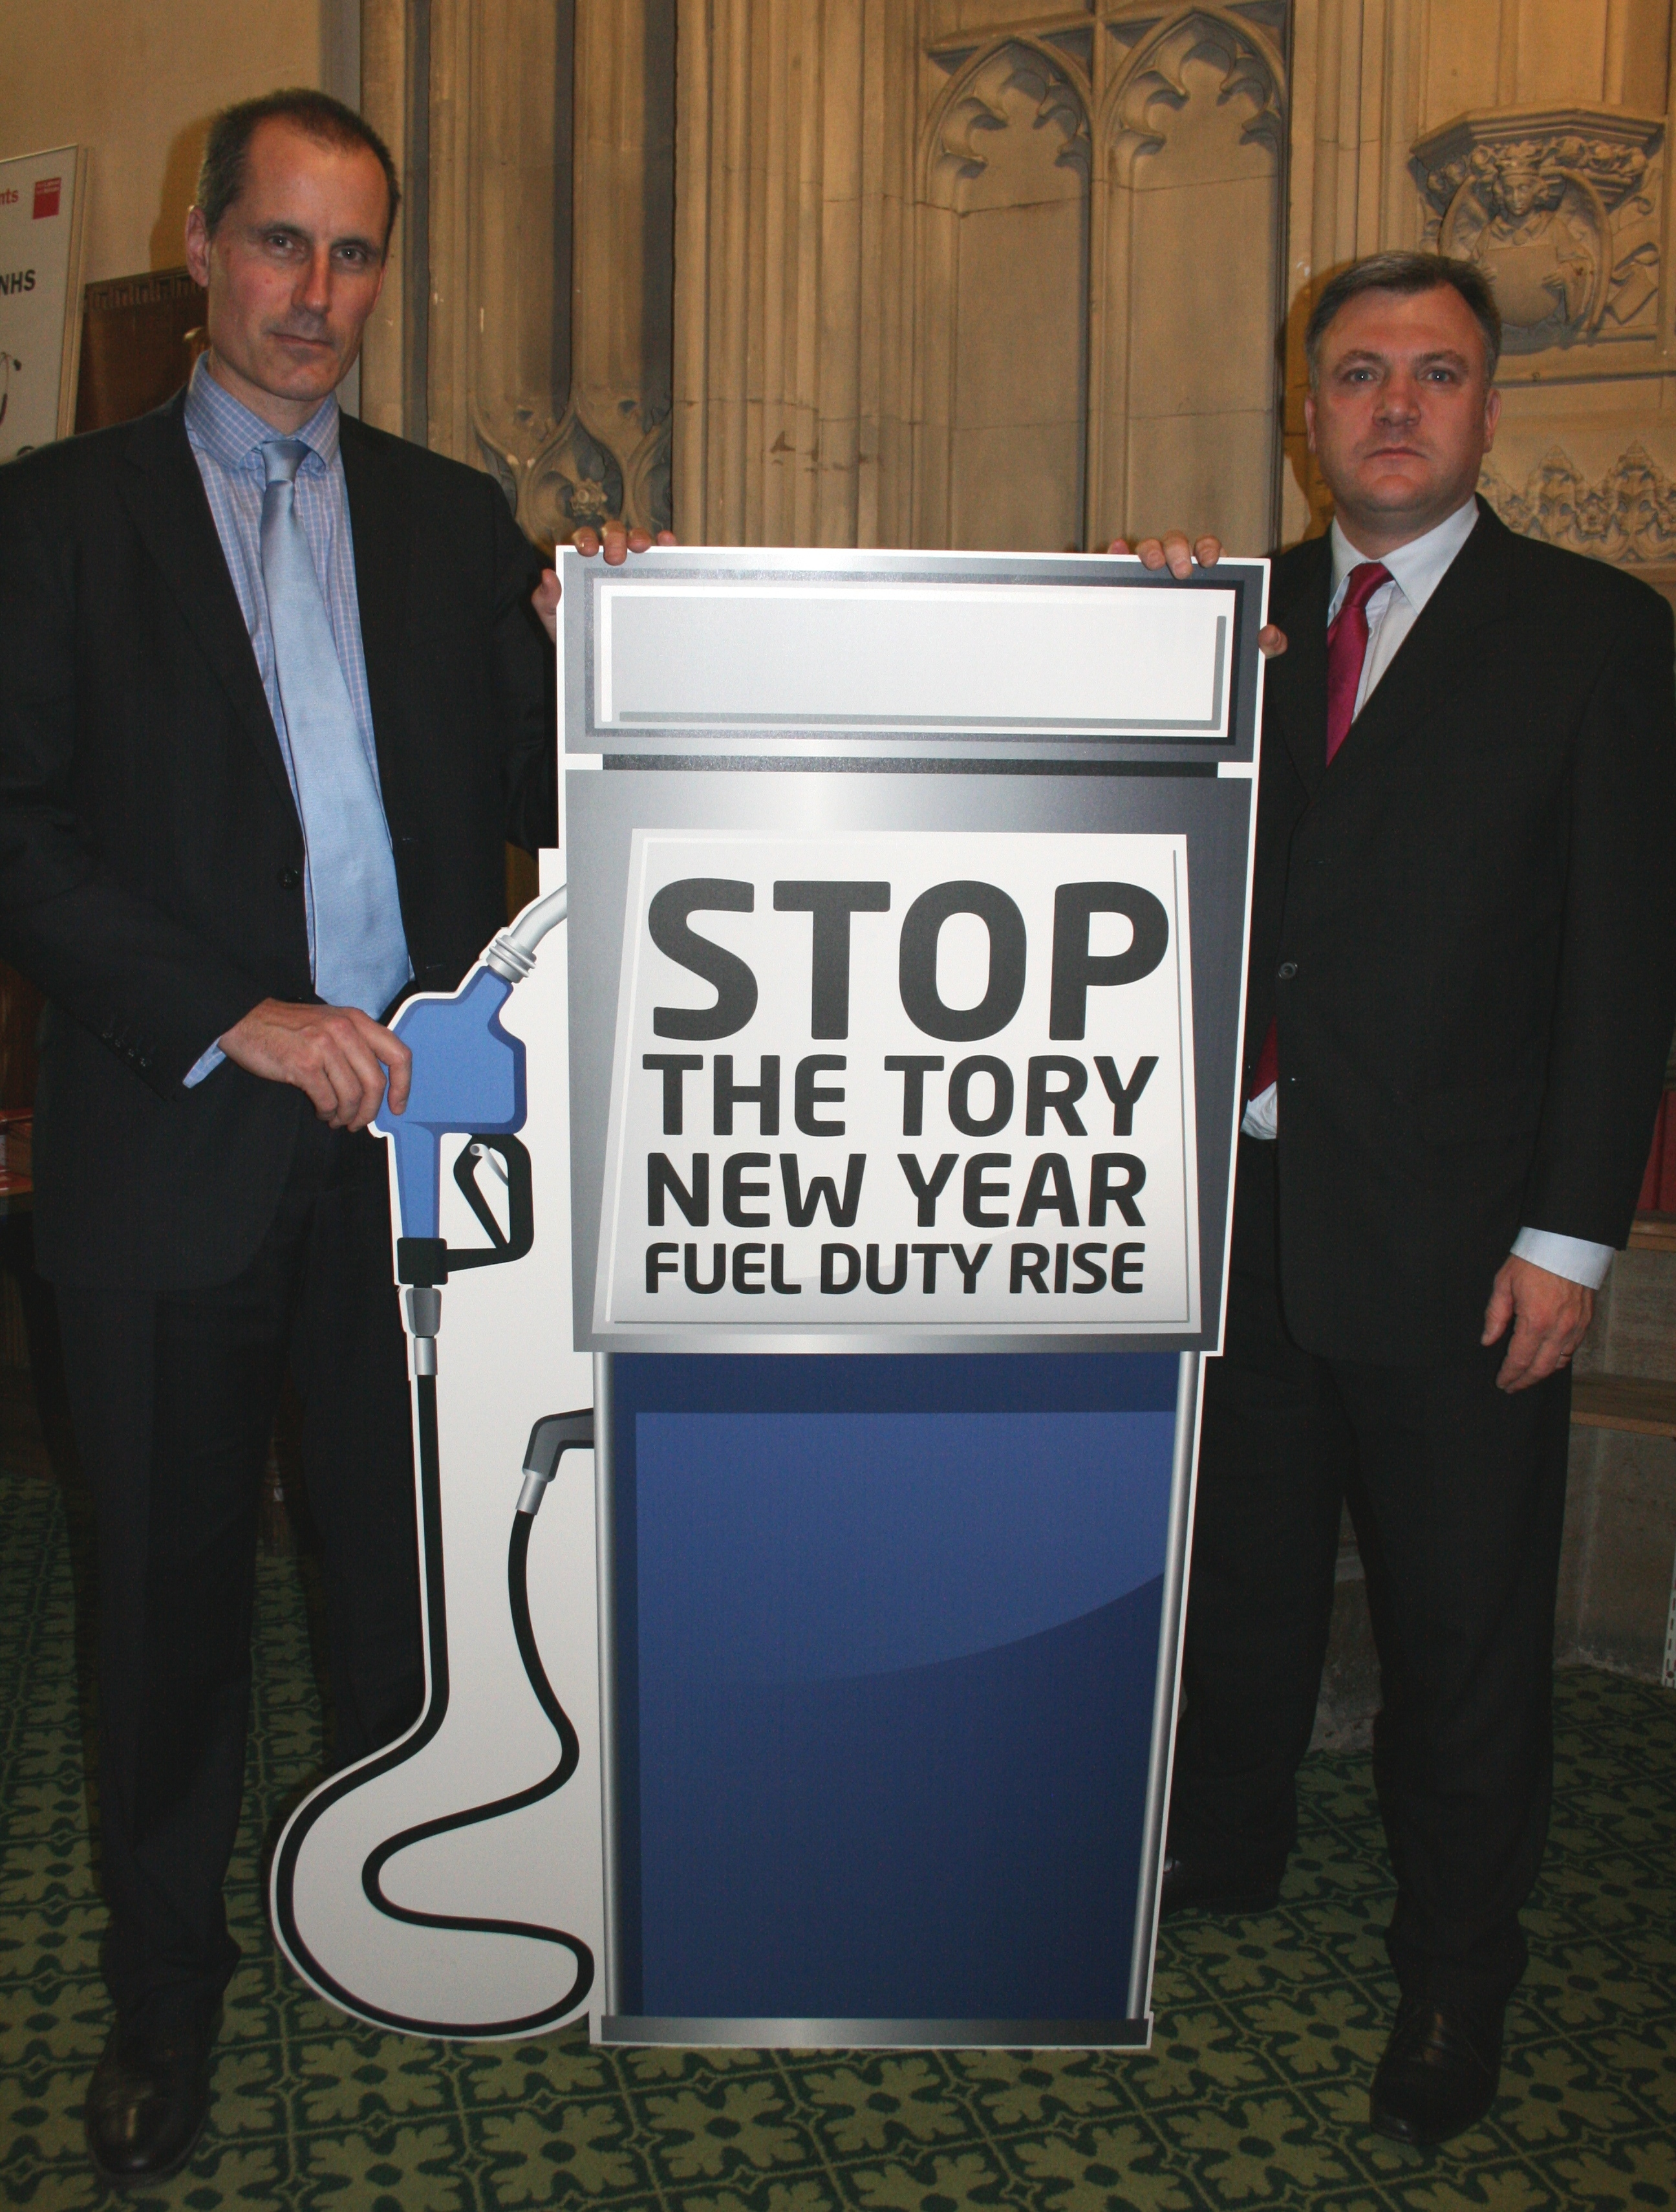 Sefton Central Labour MP Bill Esterson and Labour's Shadow Chancellor Ed Balls are calling on the Tory-Lib Dem Government to scrap the their plans for a new year fuel duty hike.